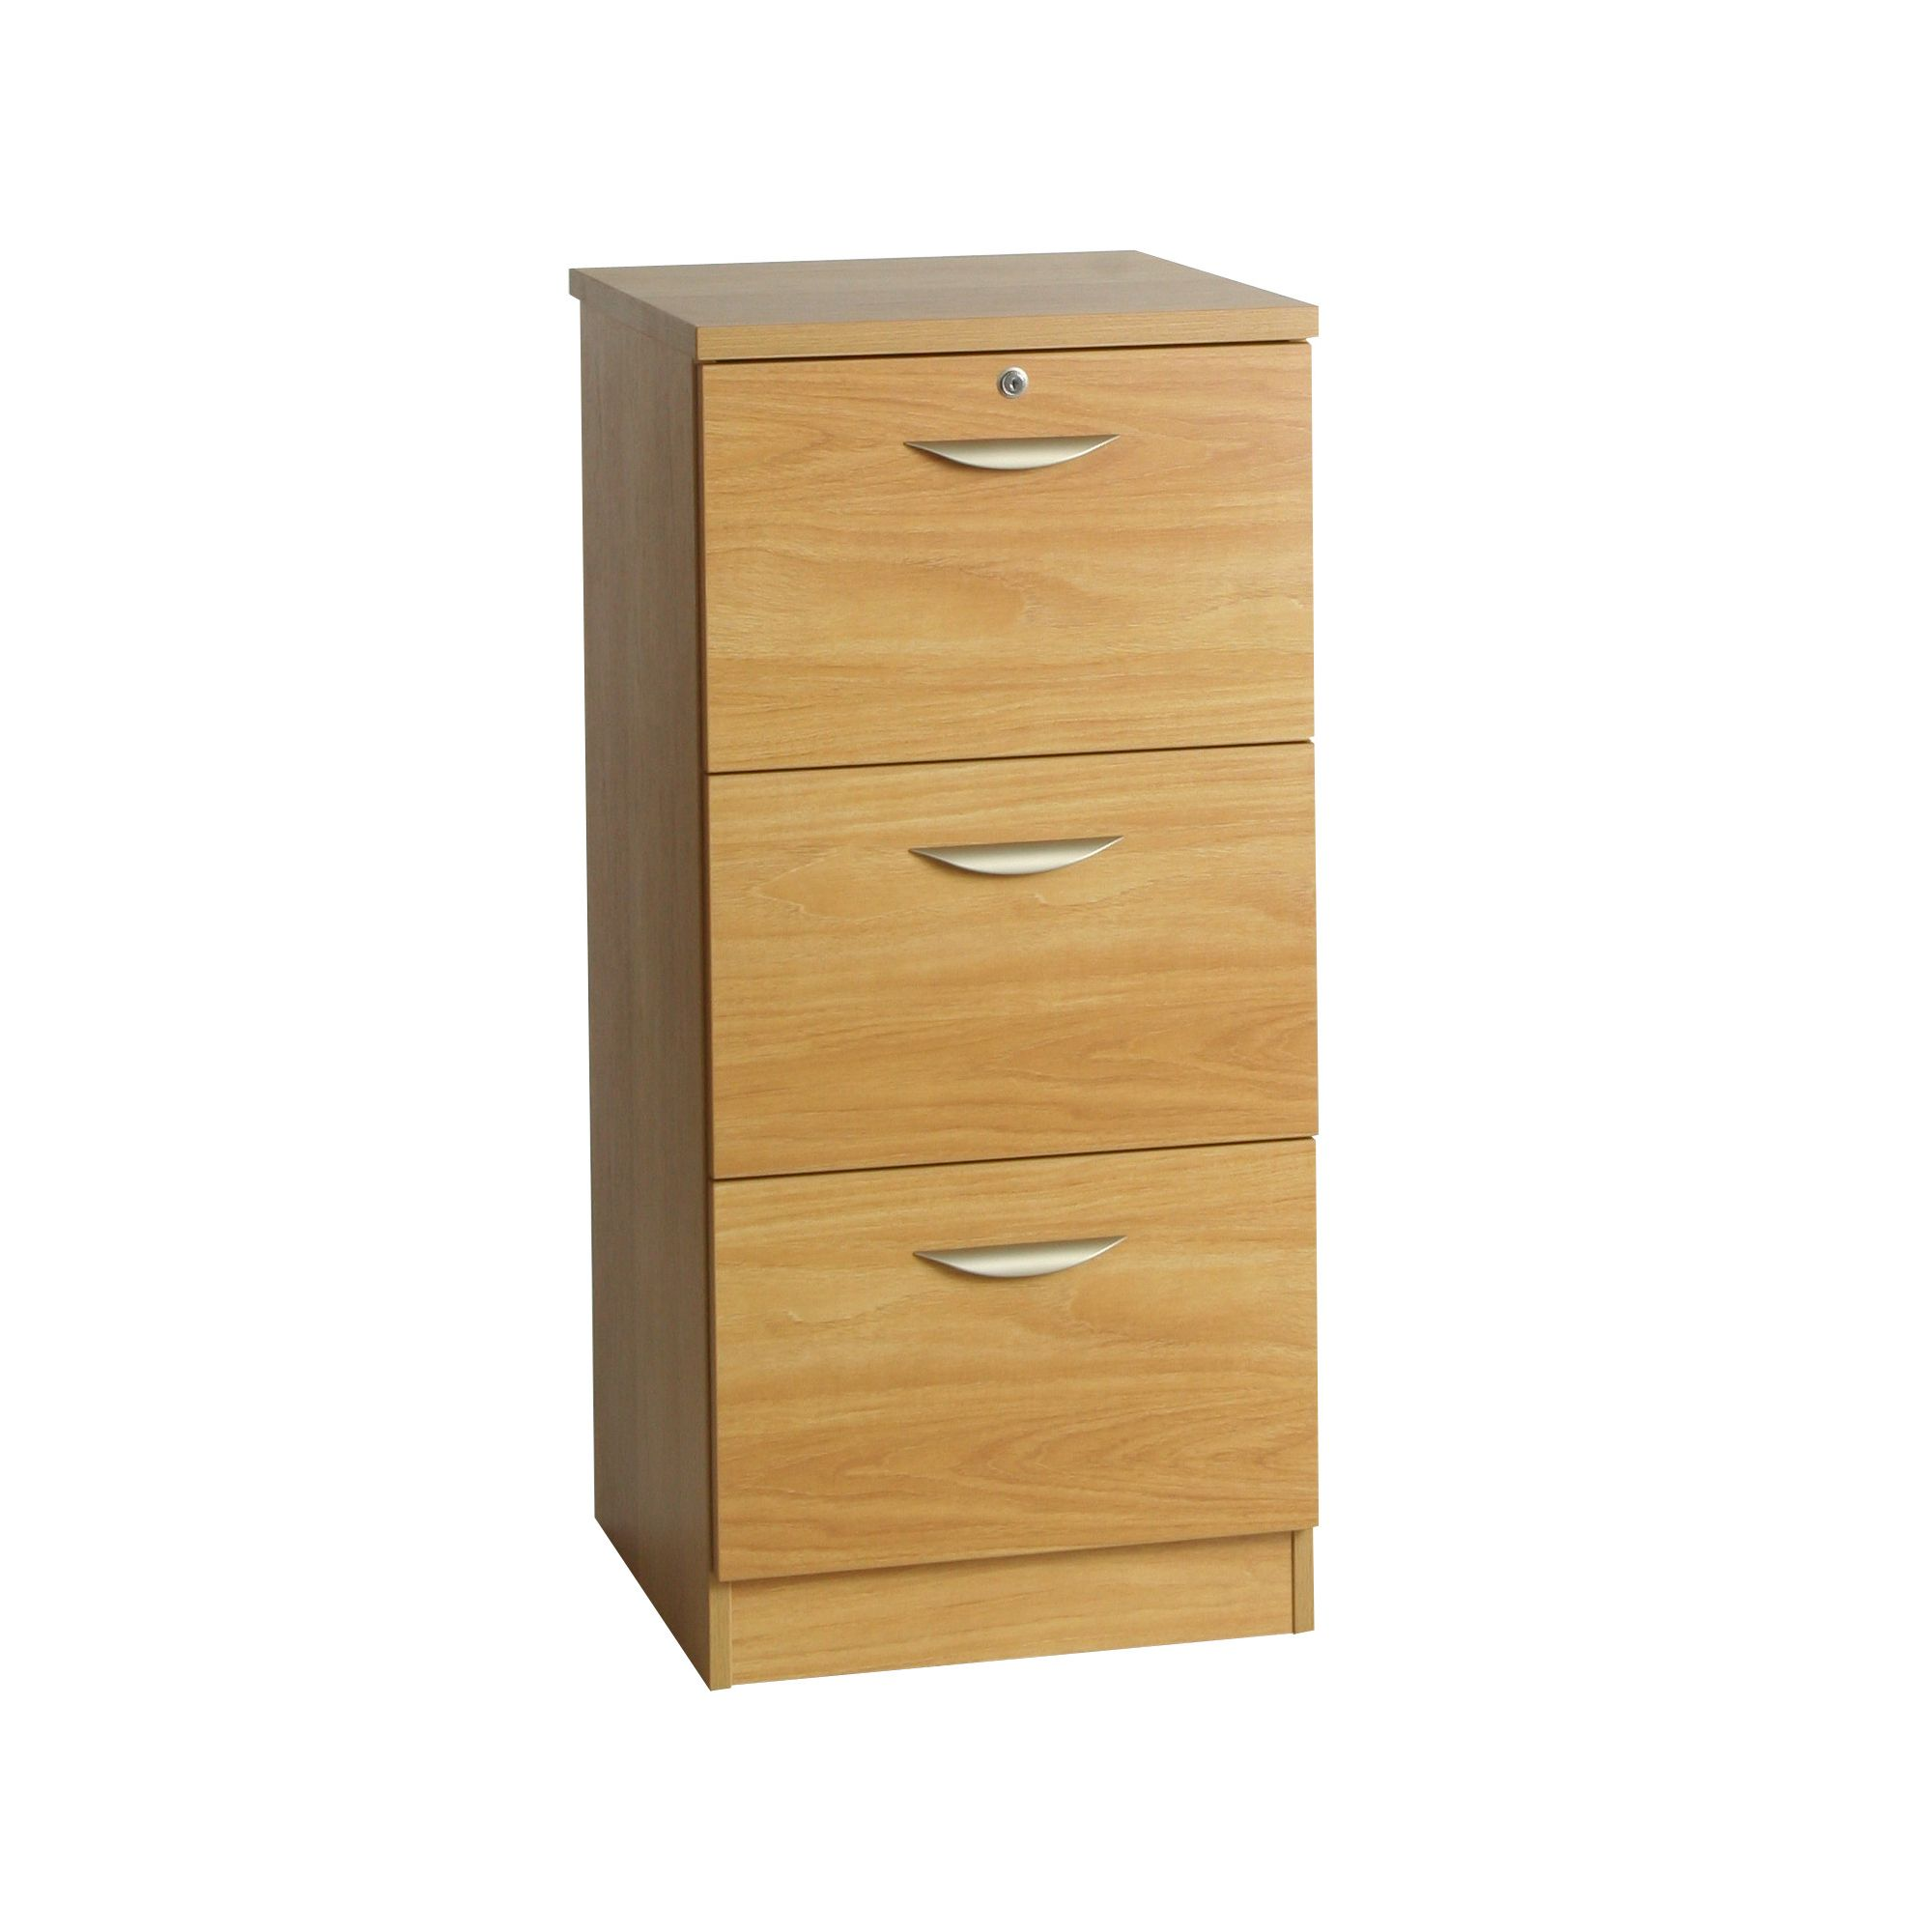 Enduro Three Drawer Tall Wooden Filing Cabinet - Beech at Tesco Direct